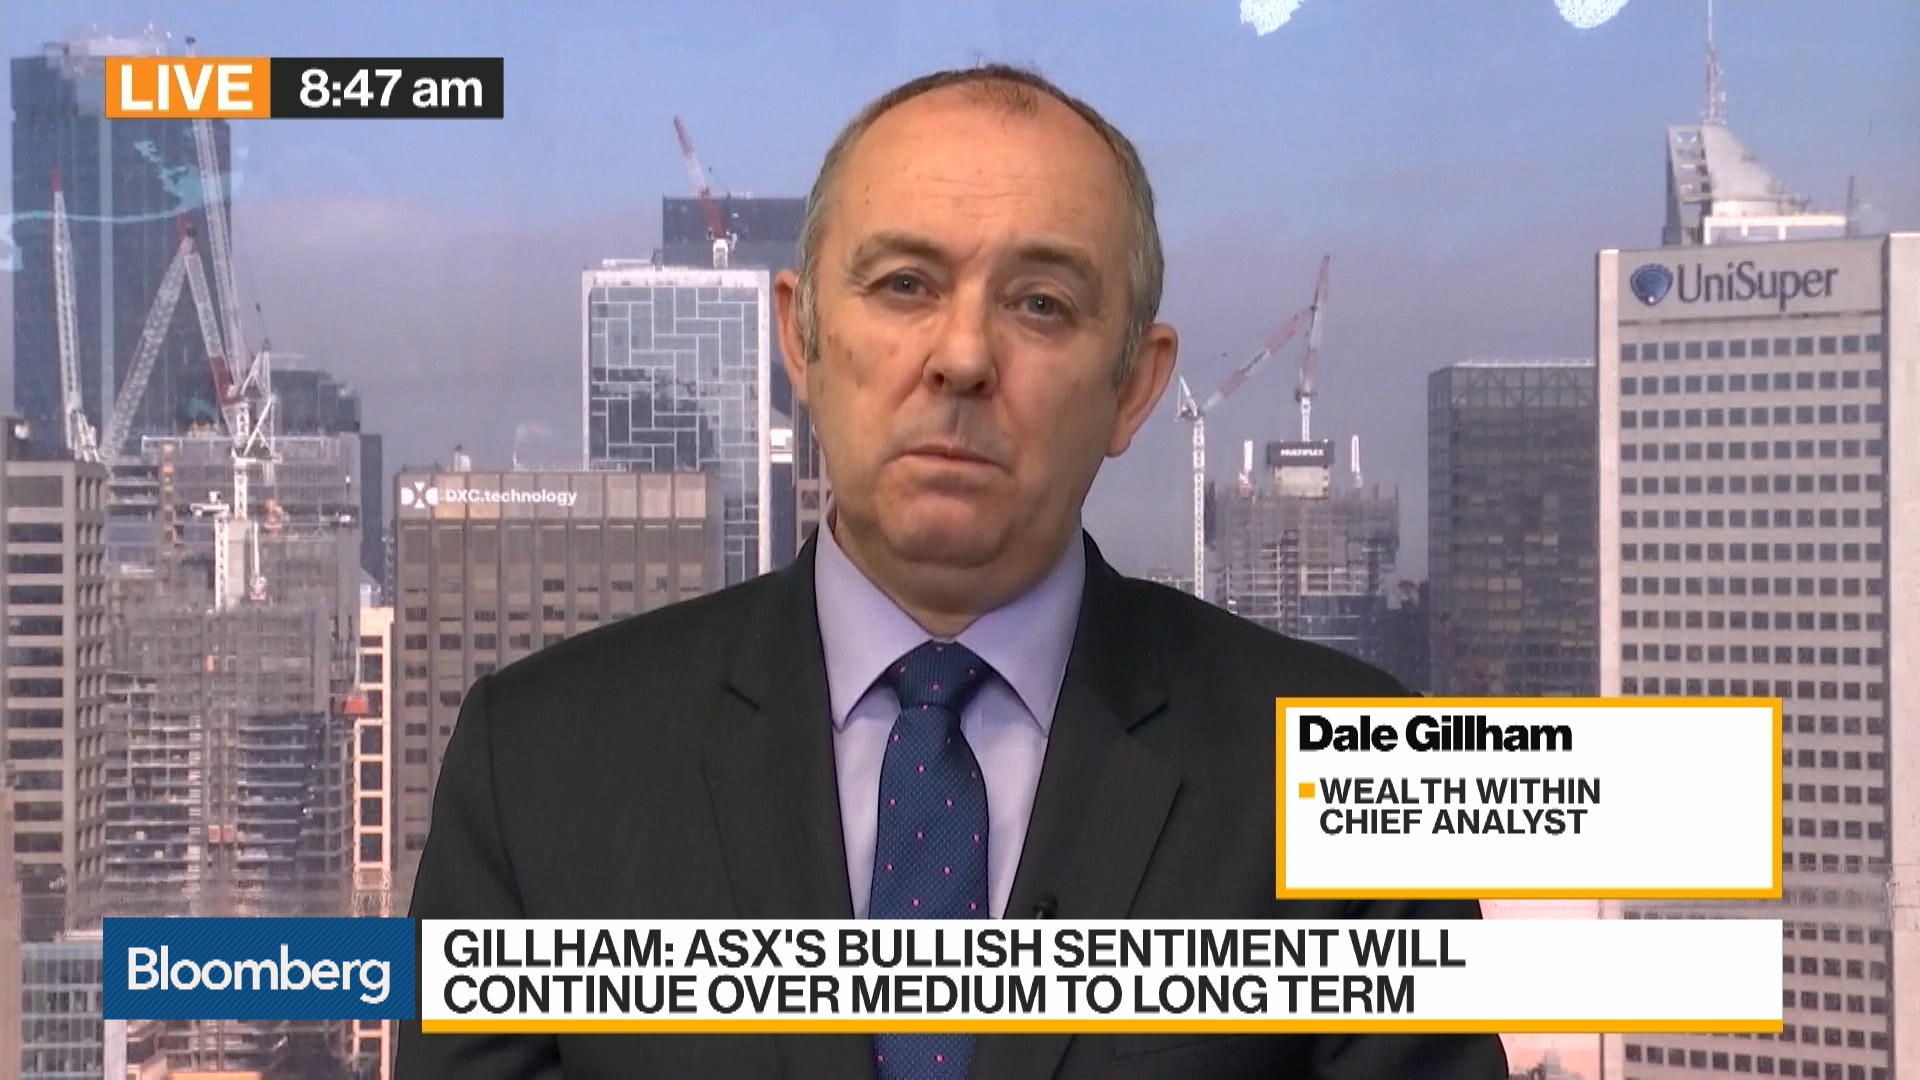 Dale Gillham, Chief Analyst at Wealth Within, on Australian Stocks